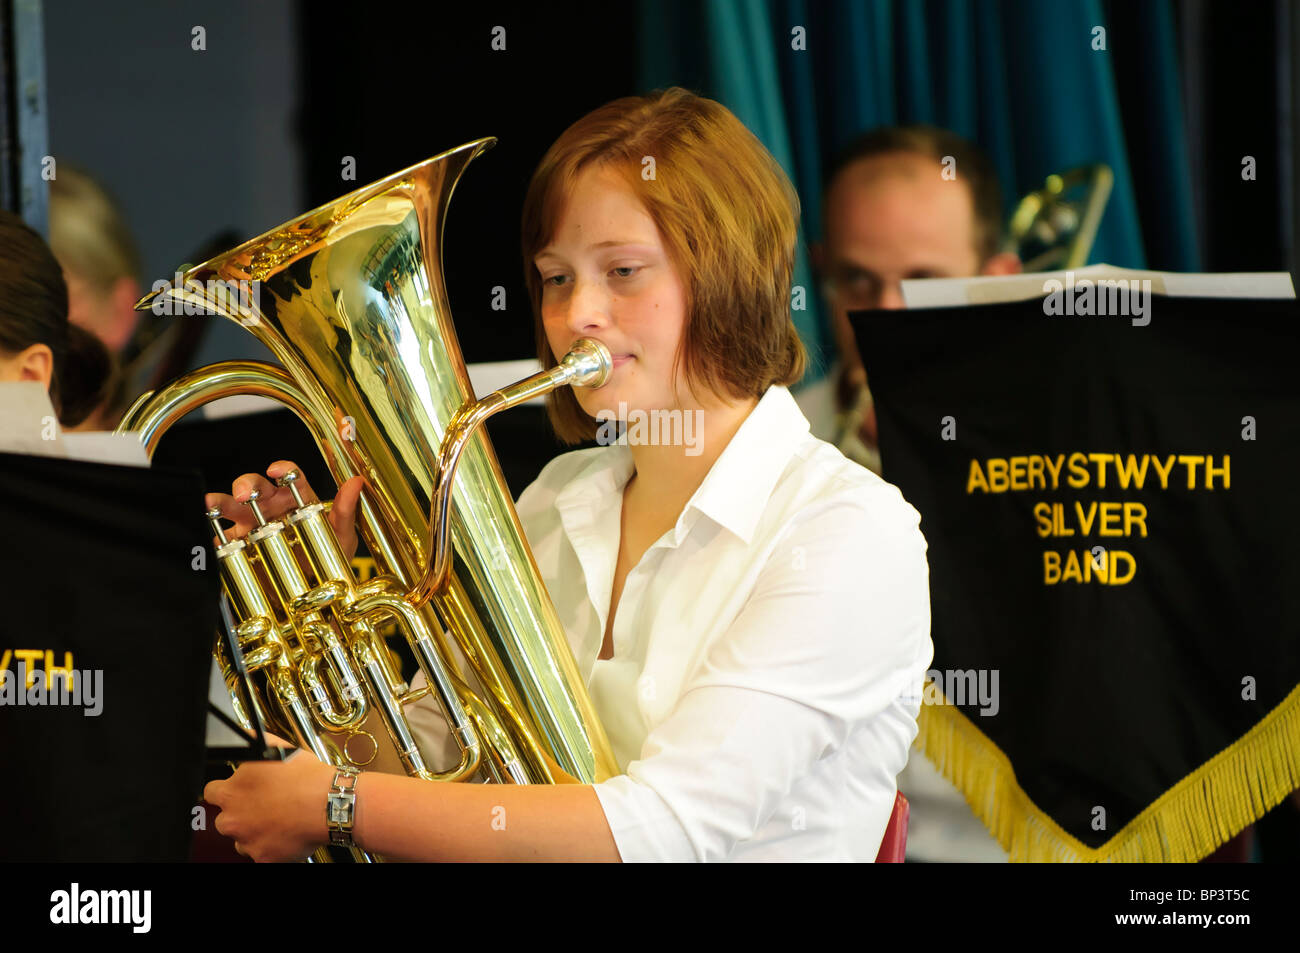 Brass band or Silver band- a young woman musician playing french horn, Aberystwyth Wales UK - Stock Image